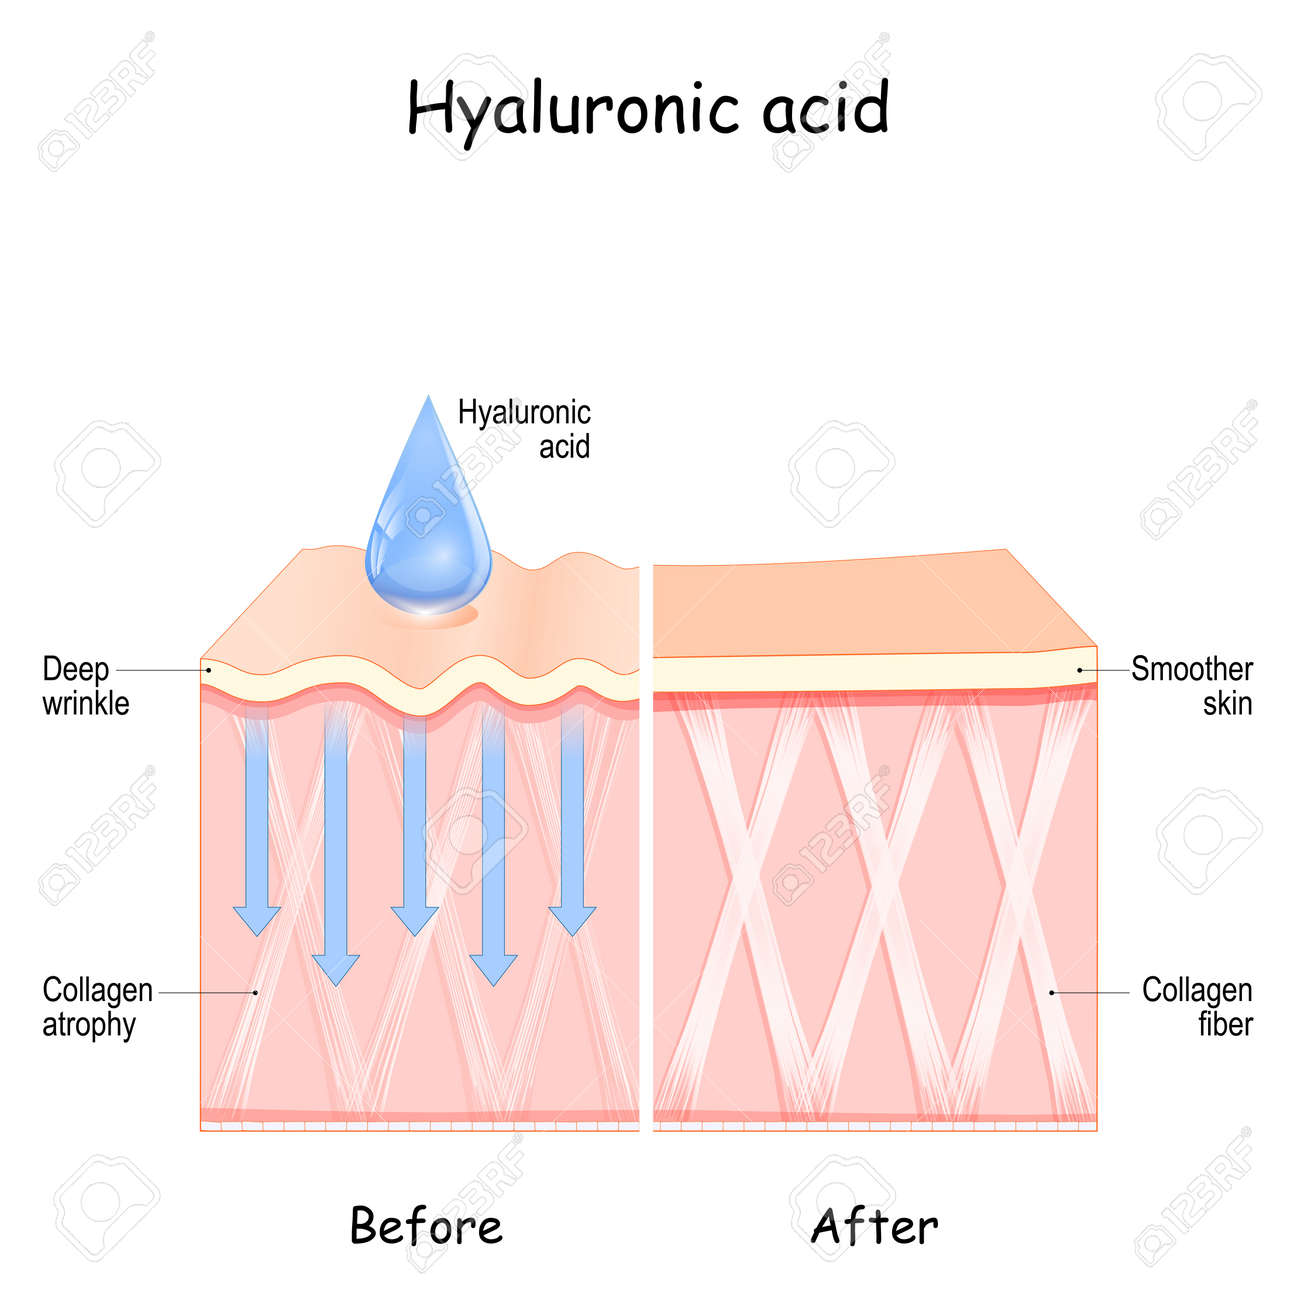 Hyaluronic acid. skin Before and After Hyaluronic acid use. comparison and difference between skin with Collagen atrophy and Deep wrinkles and Smoother skin after cosmetic procedure - 173222409